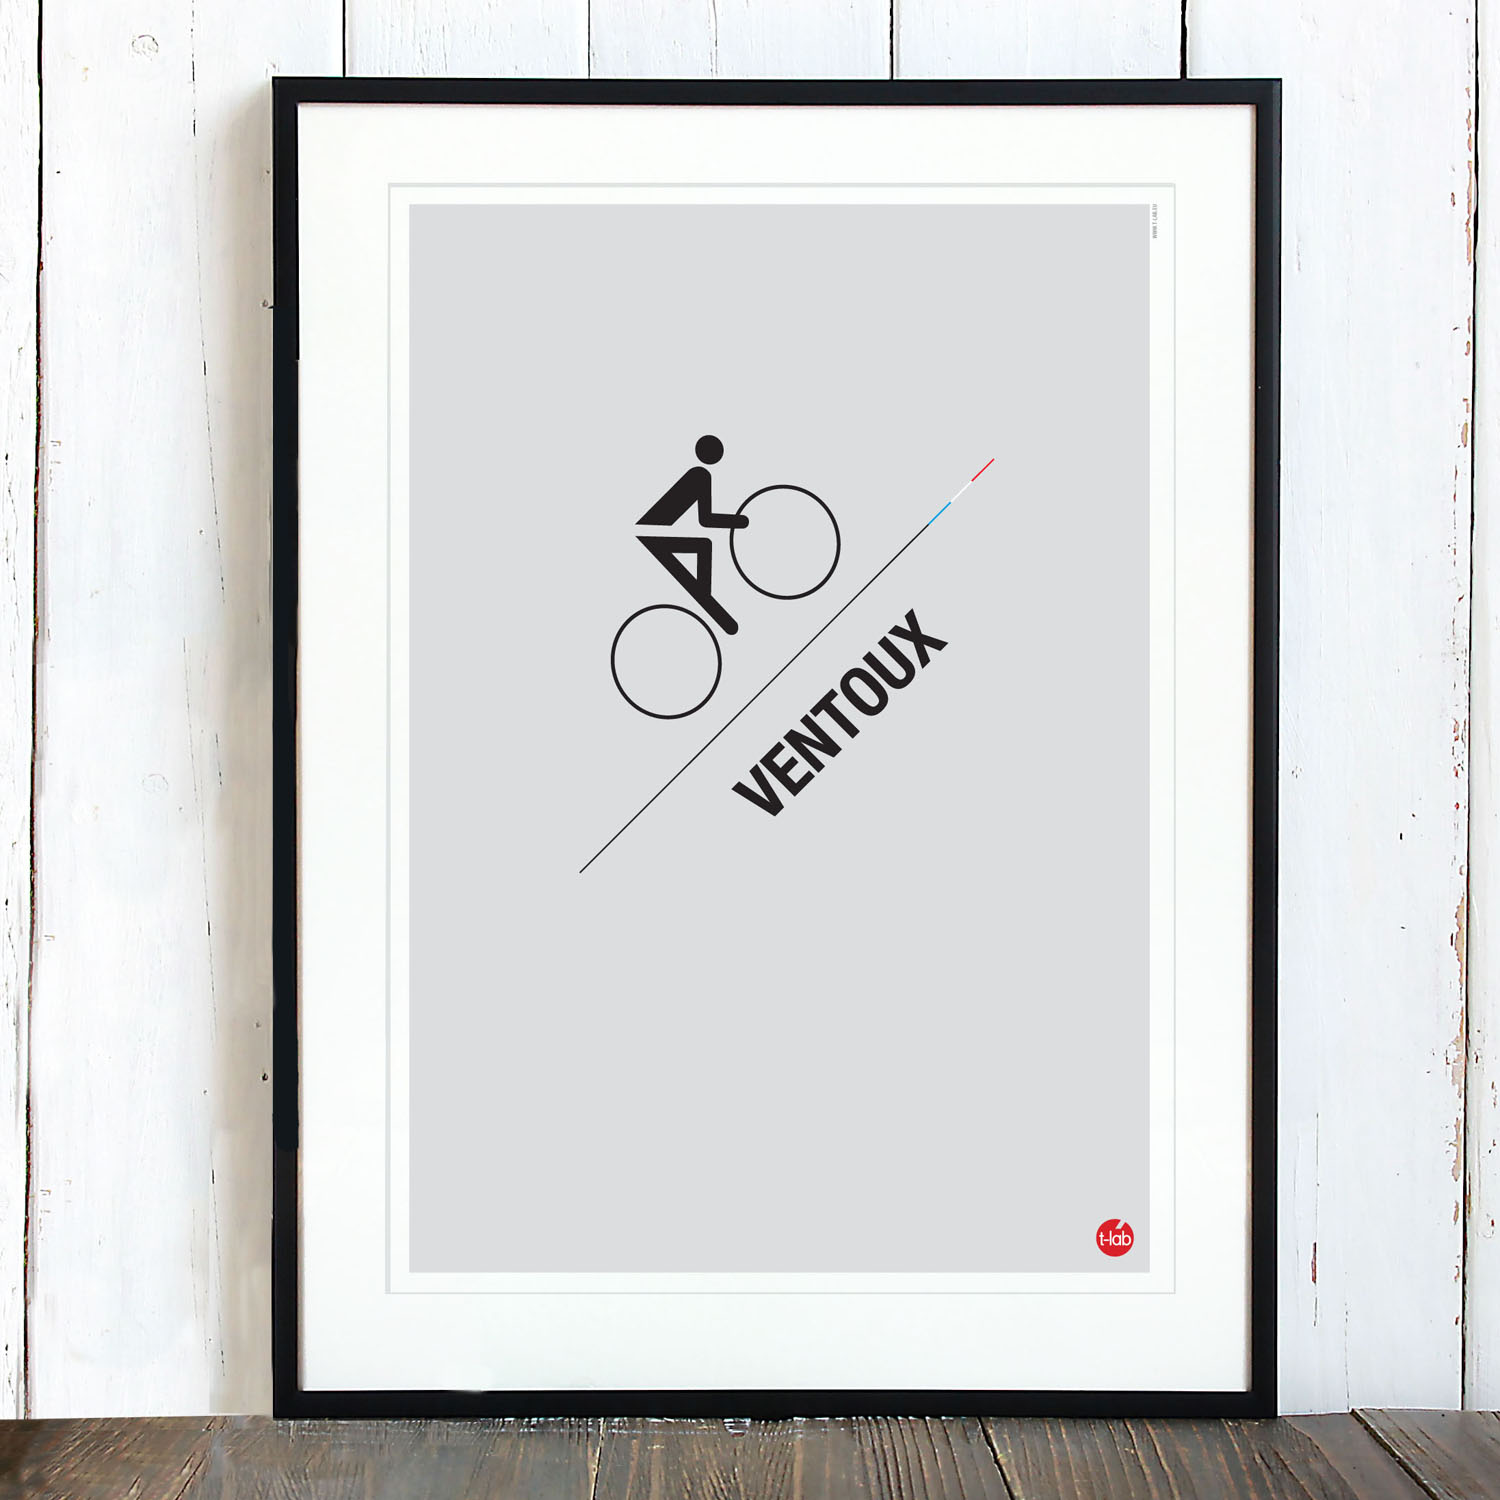 T-lab-Ventoux-A3-cycling-poster-framed